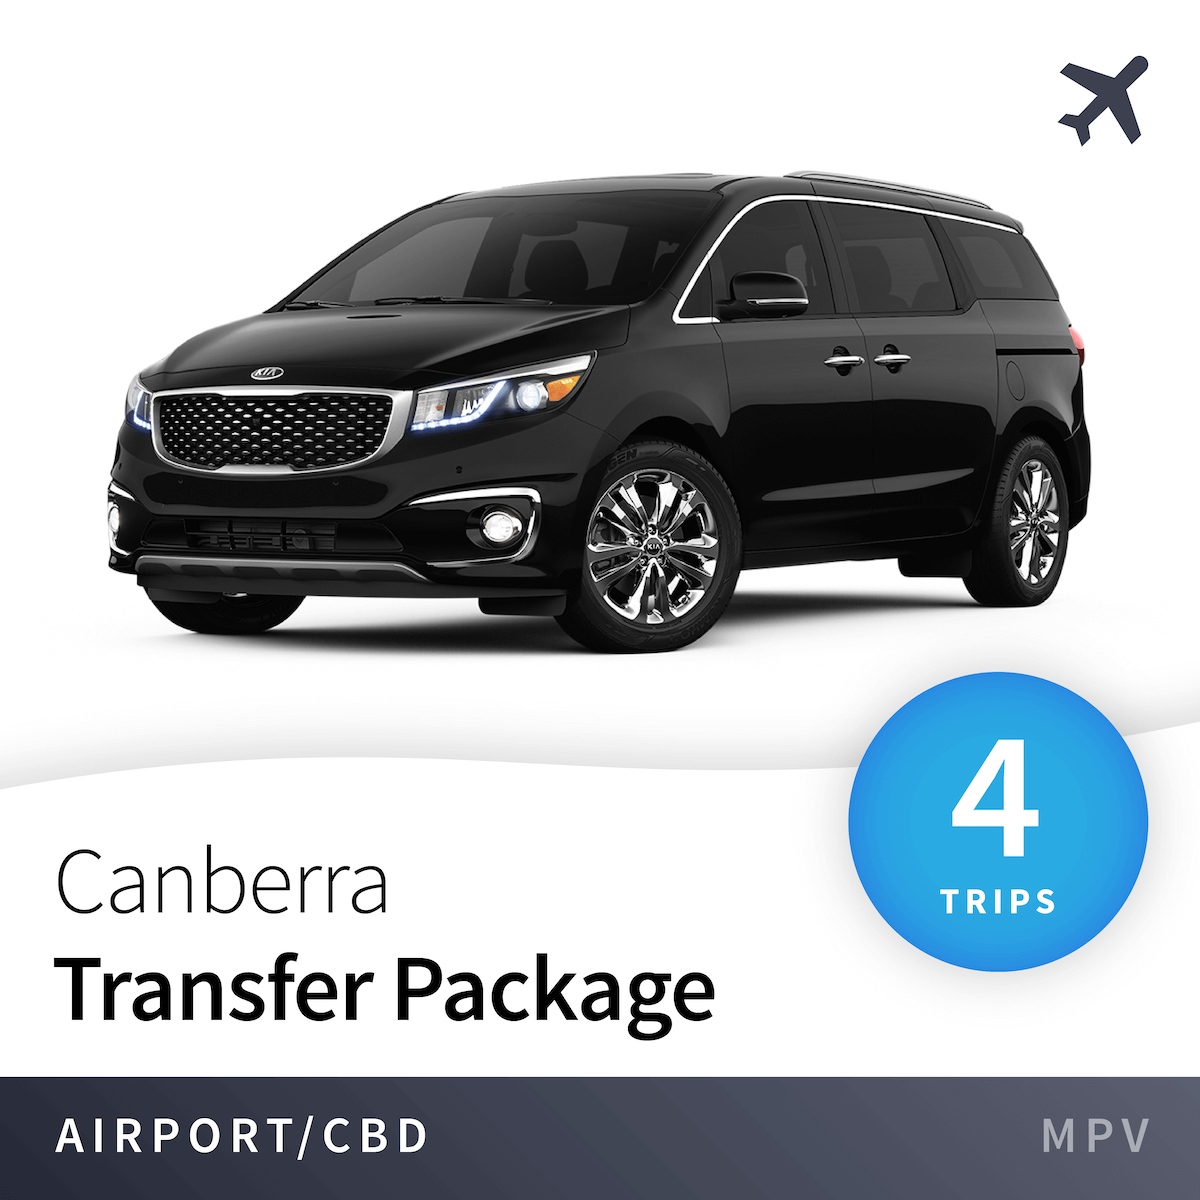 Canberra Airport Transfer Package - MPV (4 Trips) 7